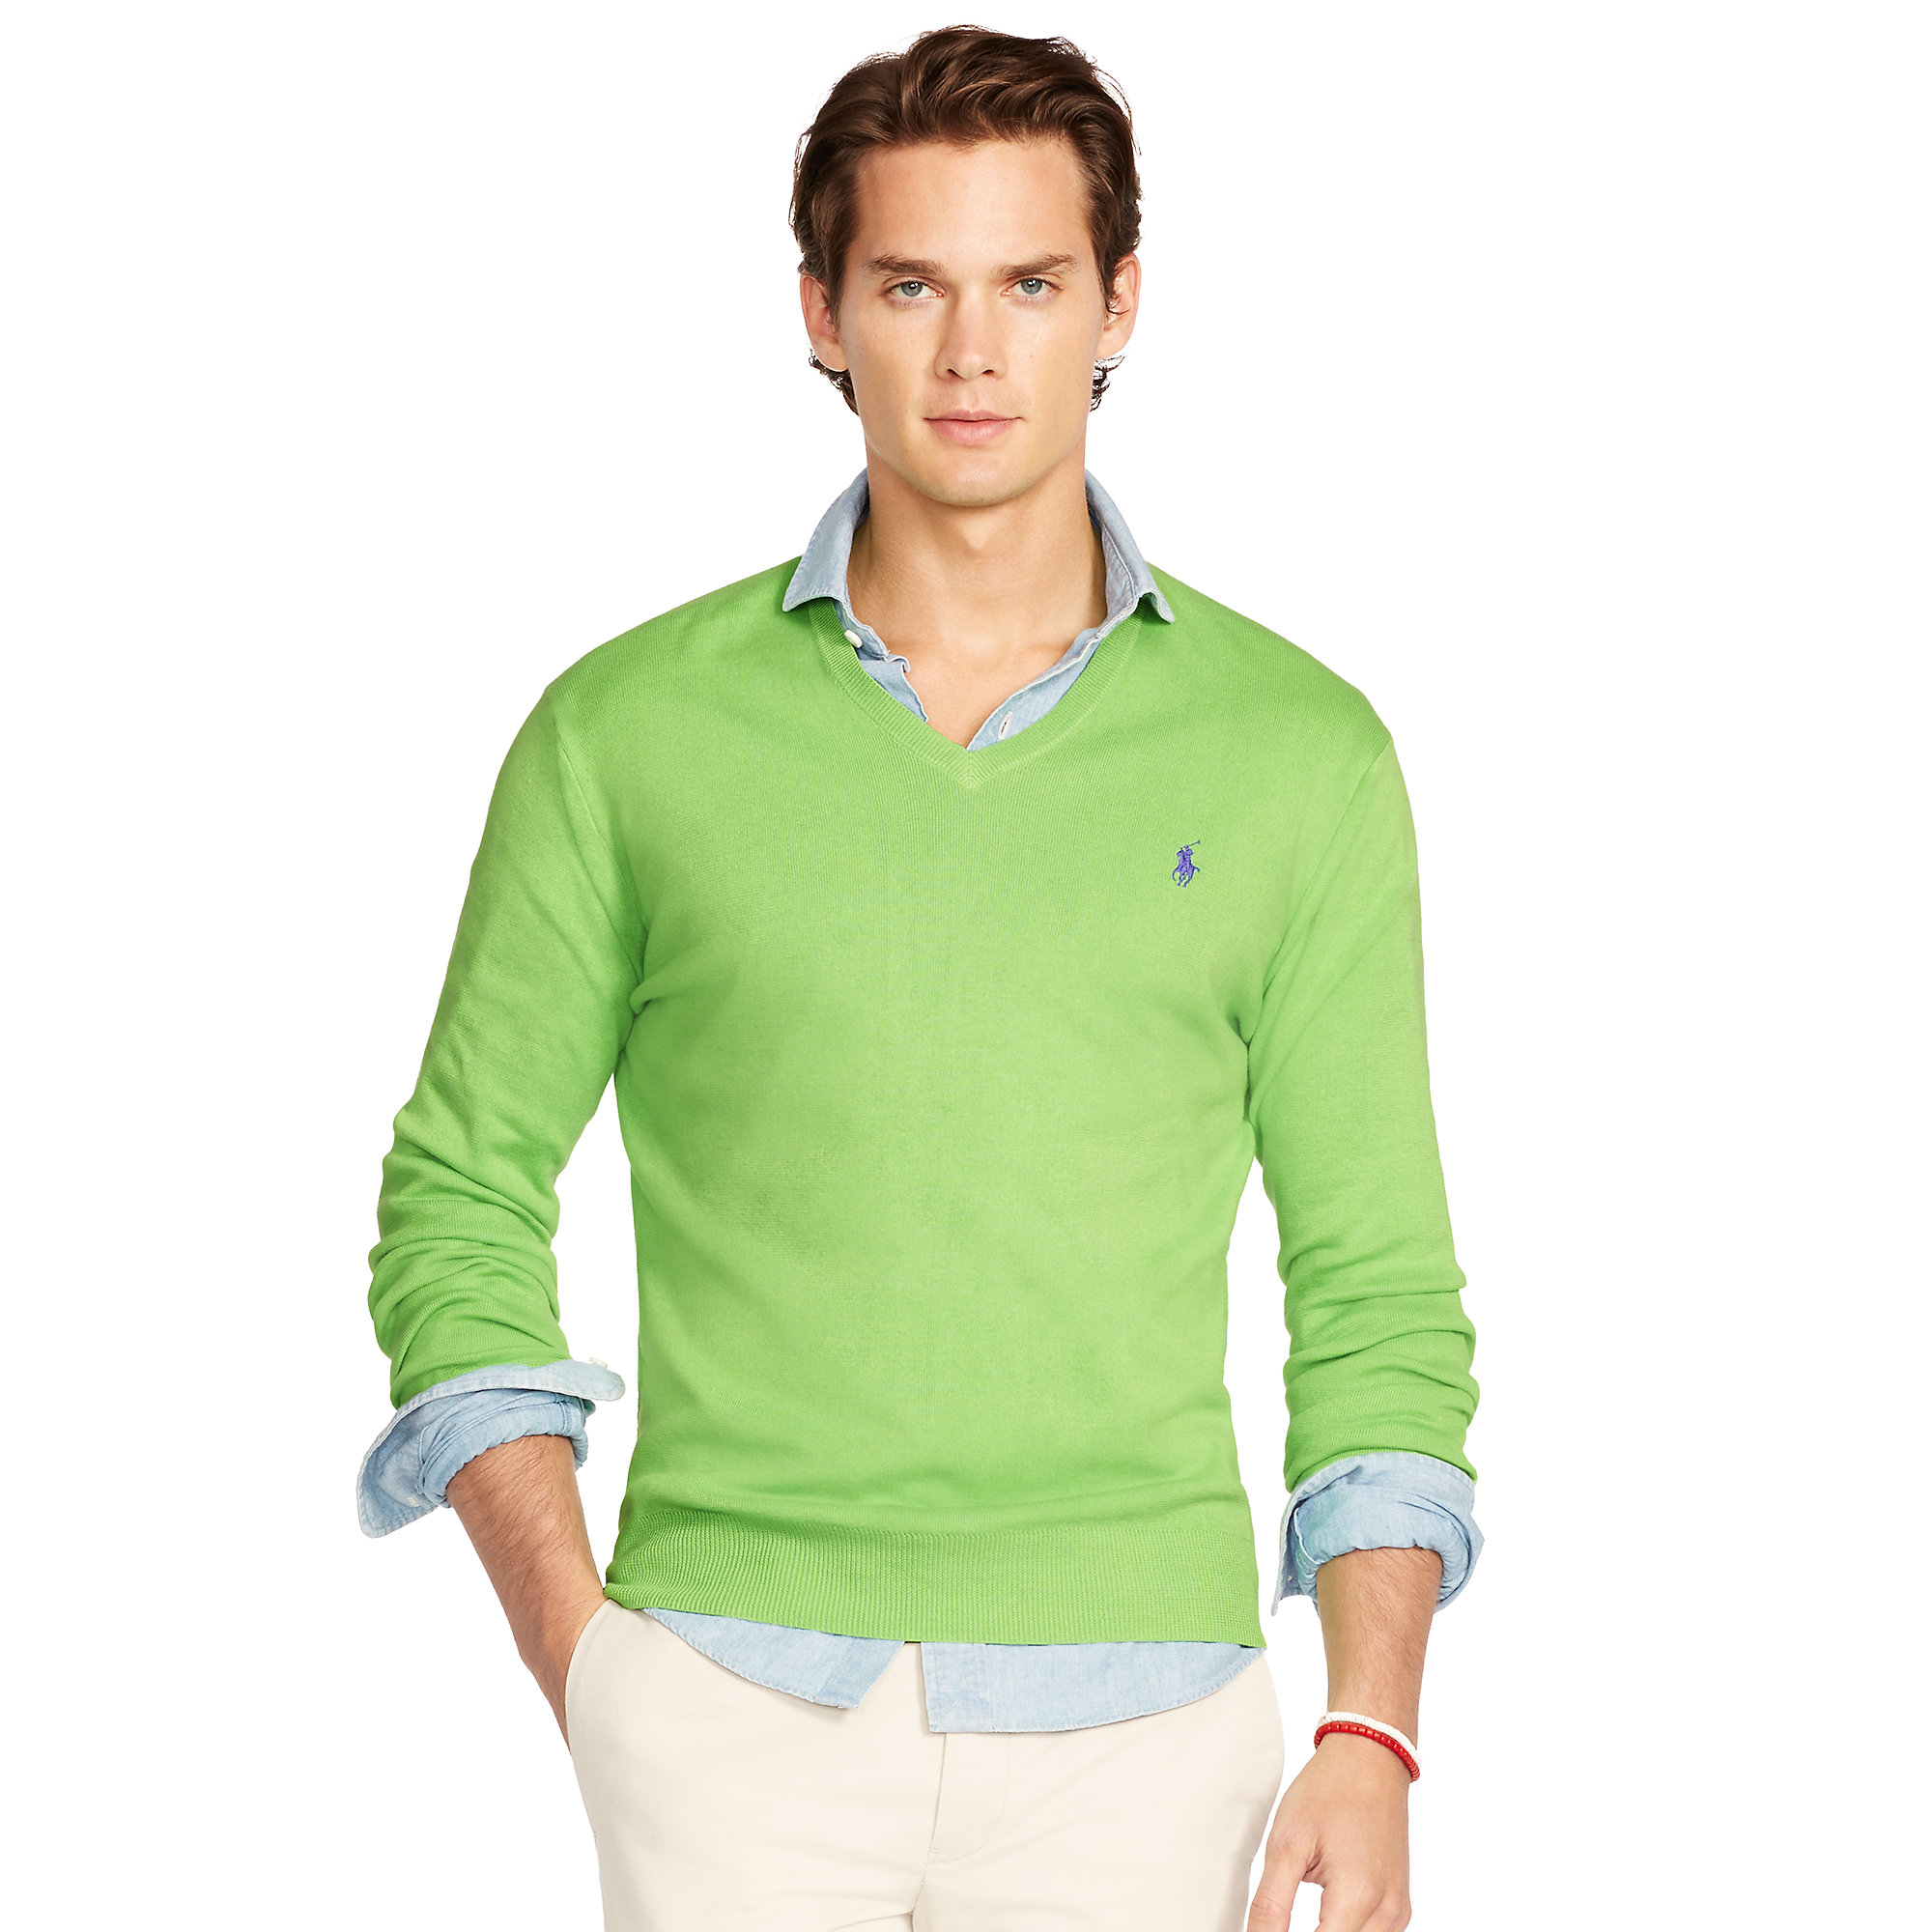 5aafb87fac69 ... amazon lyst polo ralph lauren pima cotton v neck sweater in green for  men d0965 90f71